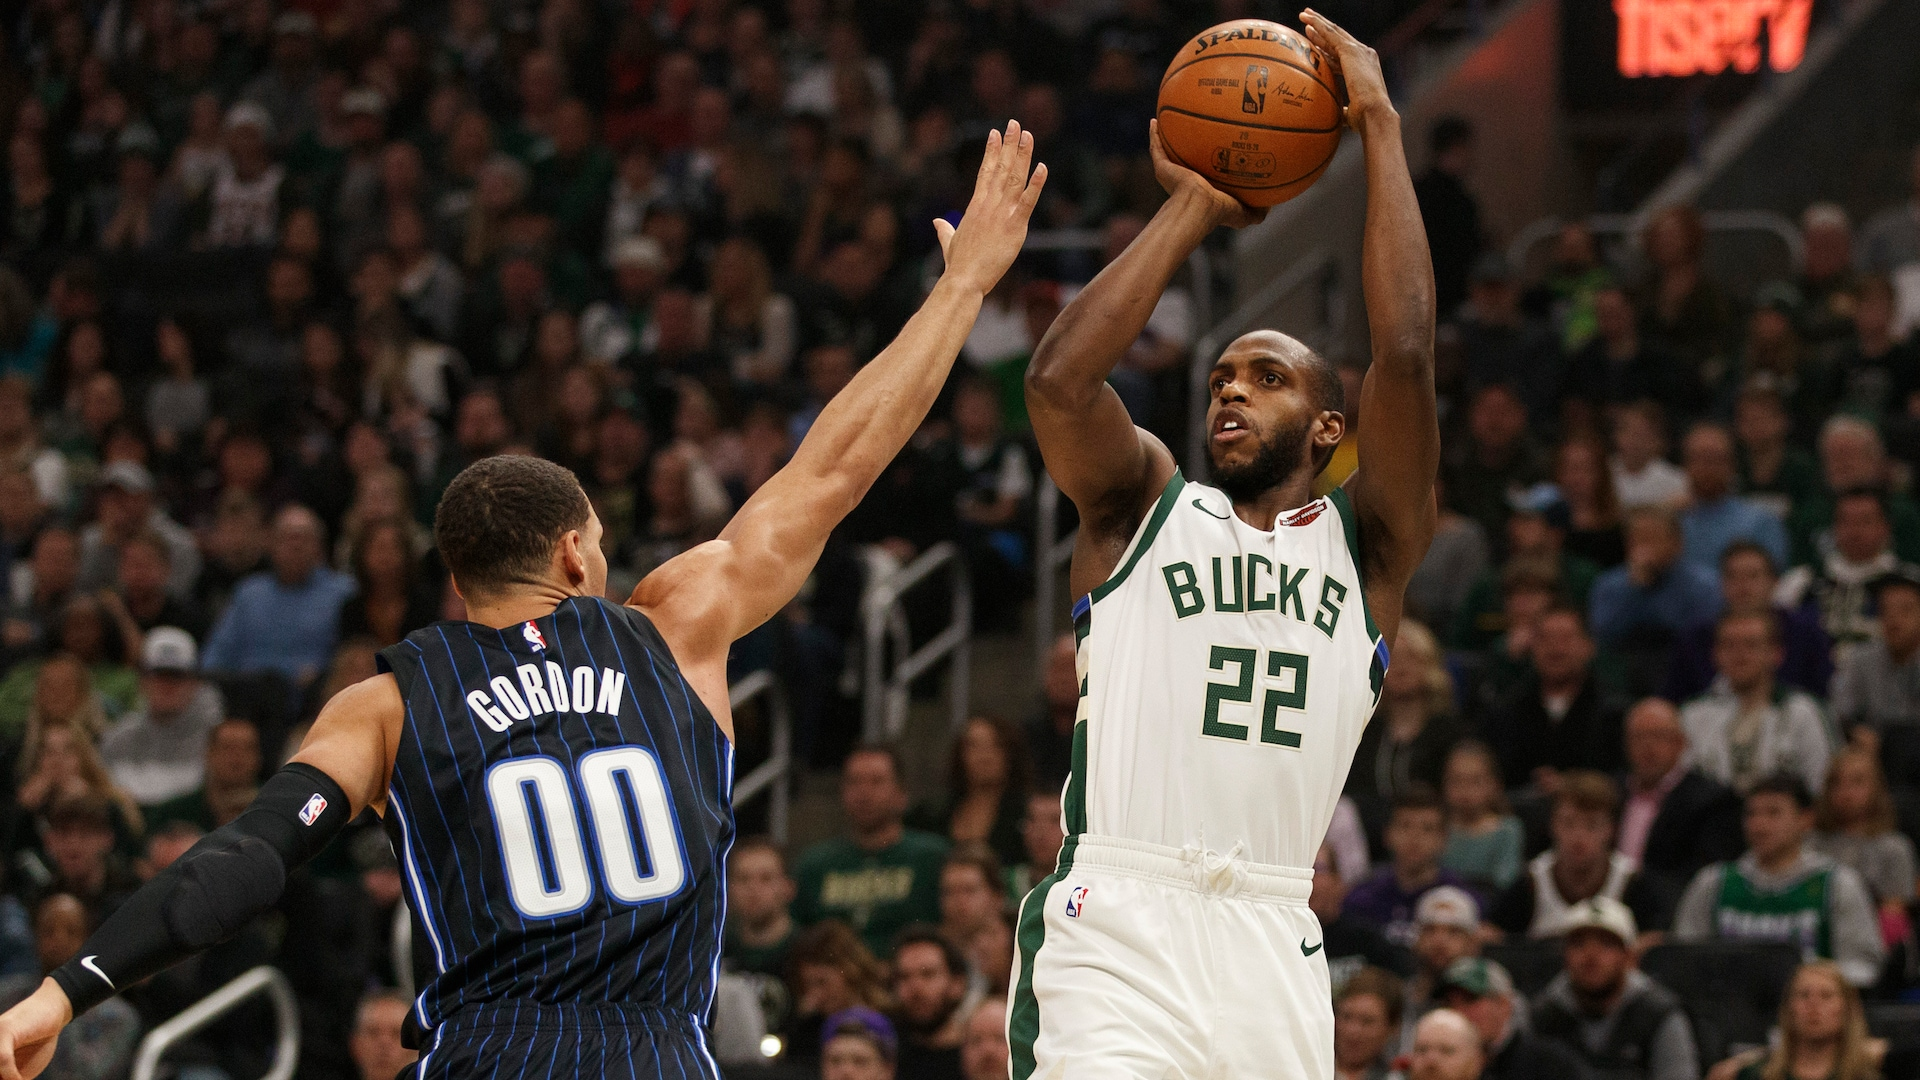 Bucks have made the 3-point line their strength, but could it also be a weakness?